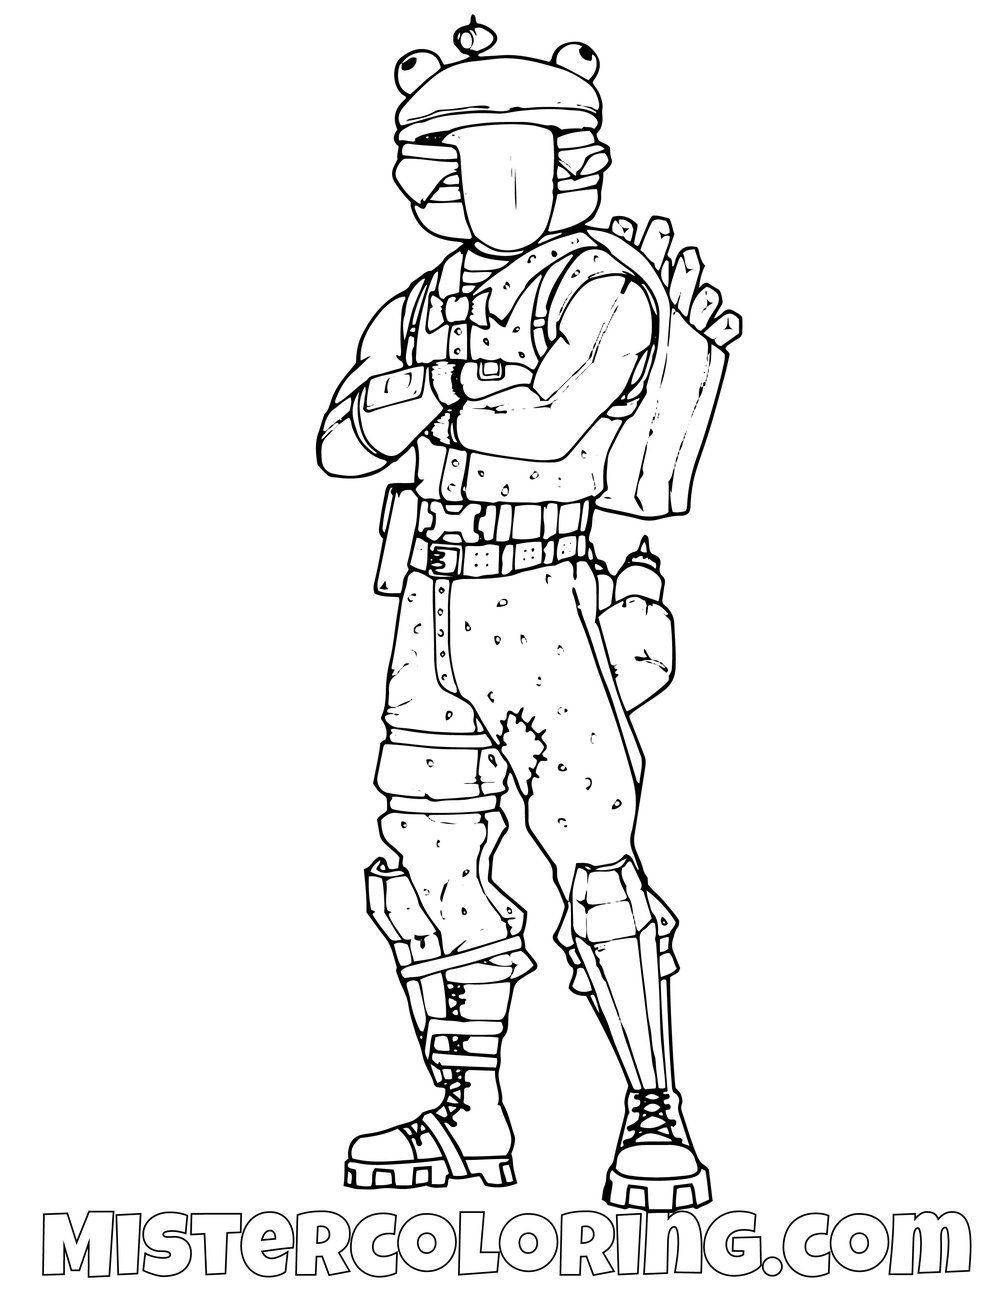 Durr Burger Fortnite Coloring Page Coloring Pages For Kids Coloring Pages Easy Coloring Pages In 2021 Coloring Pages For Kids Coloring Pages Easy Coloring Pages